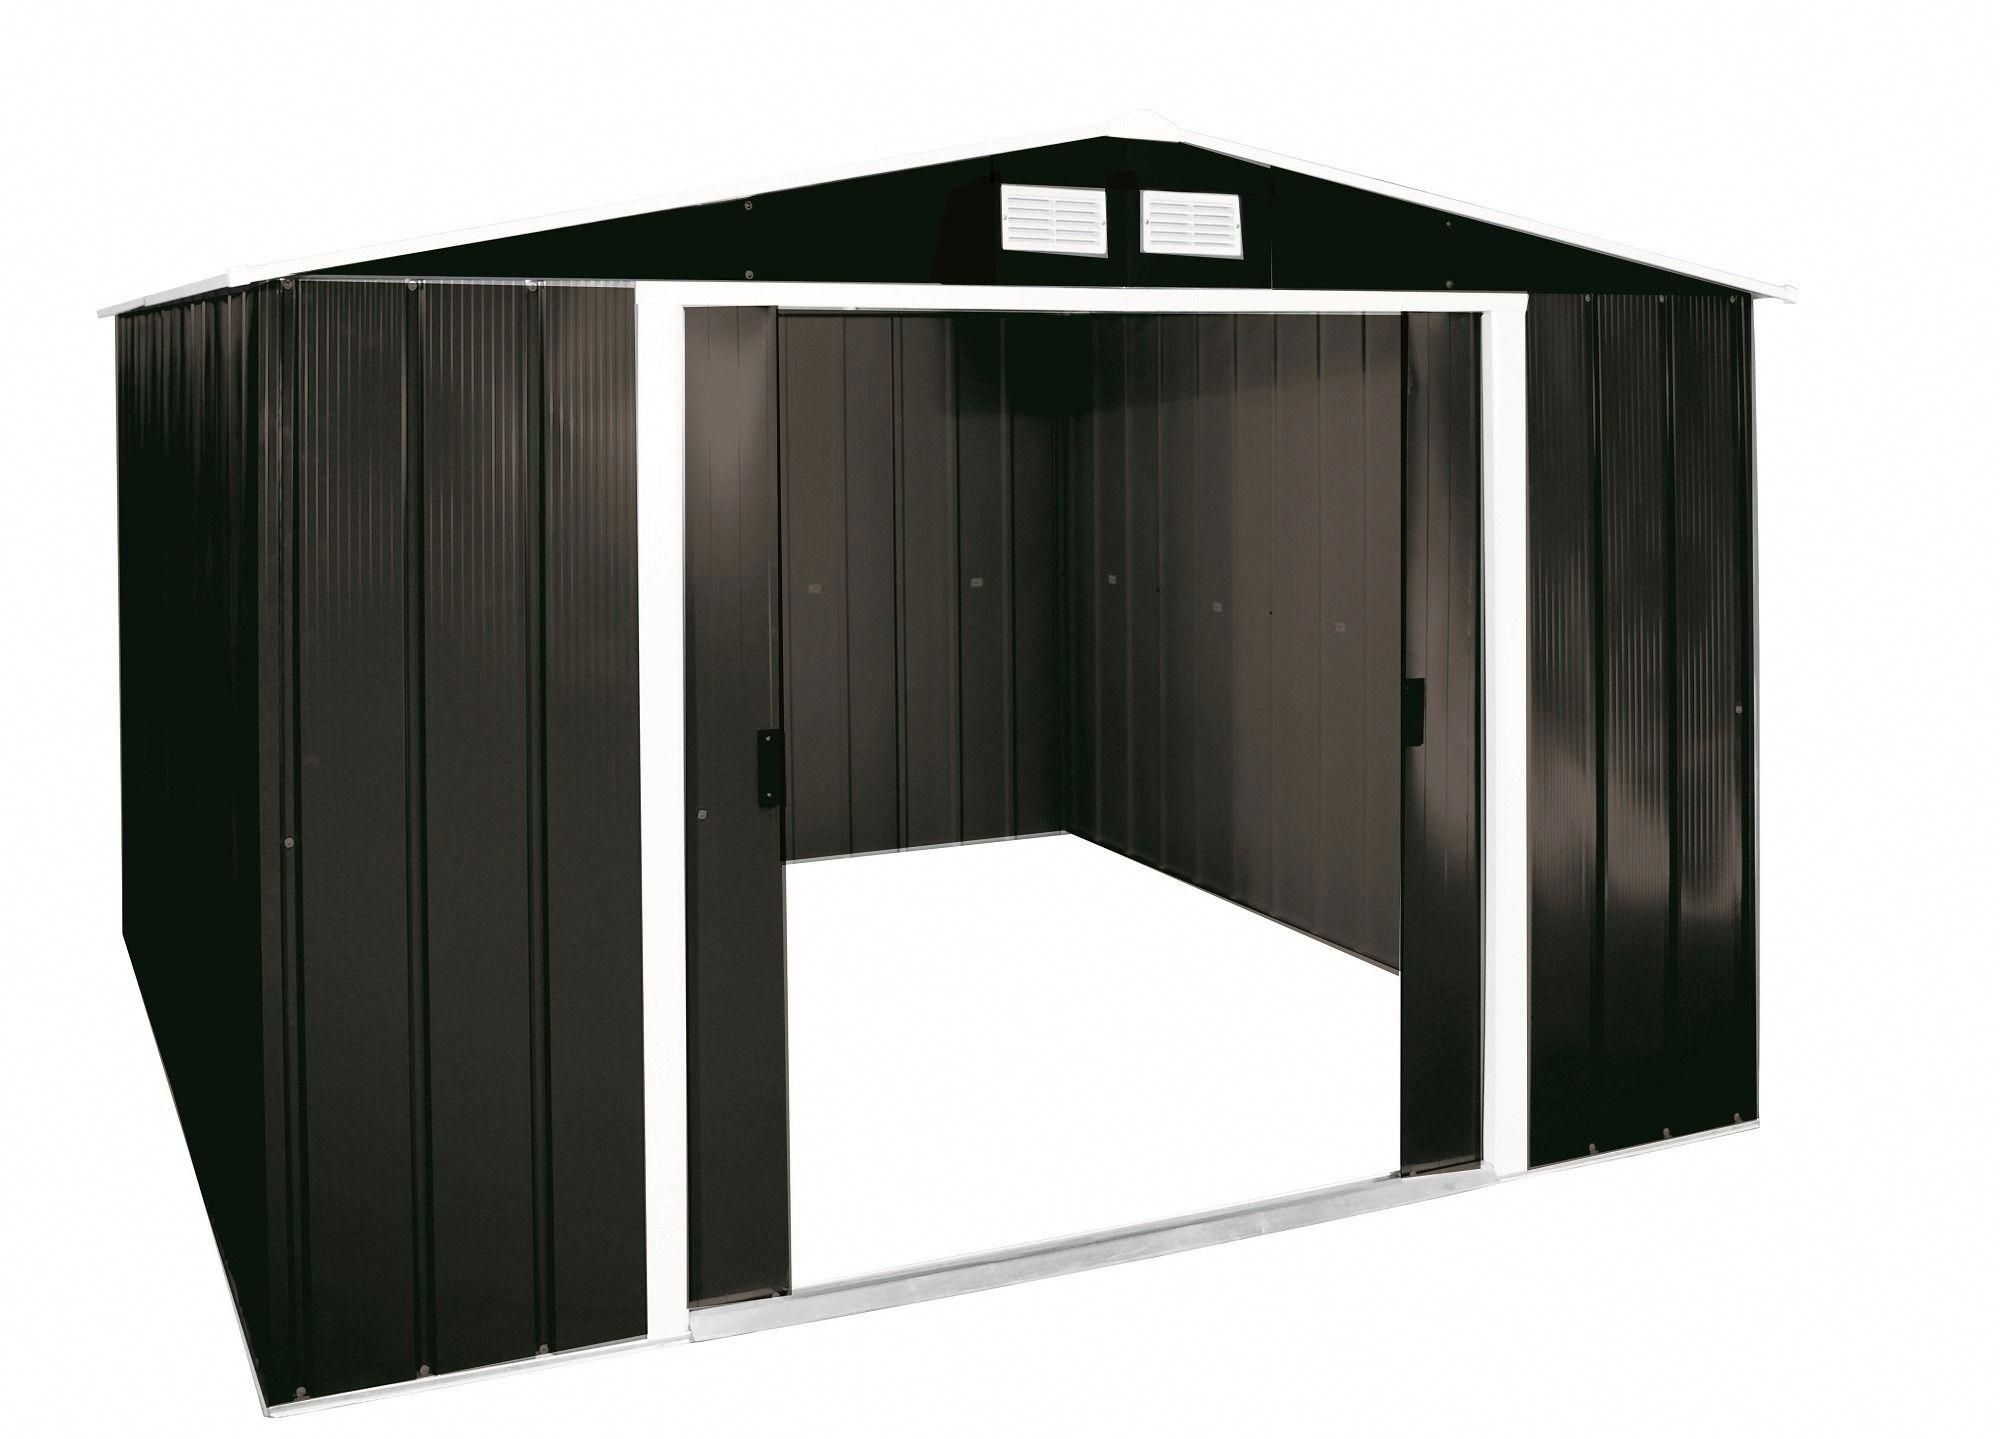 Sapphire 10x10 Metal Shed Anthracite Metalgardensheds Metal Shed Storage Sheds For Sale Shed